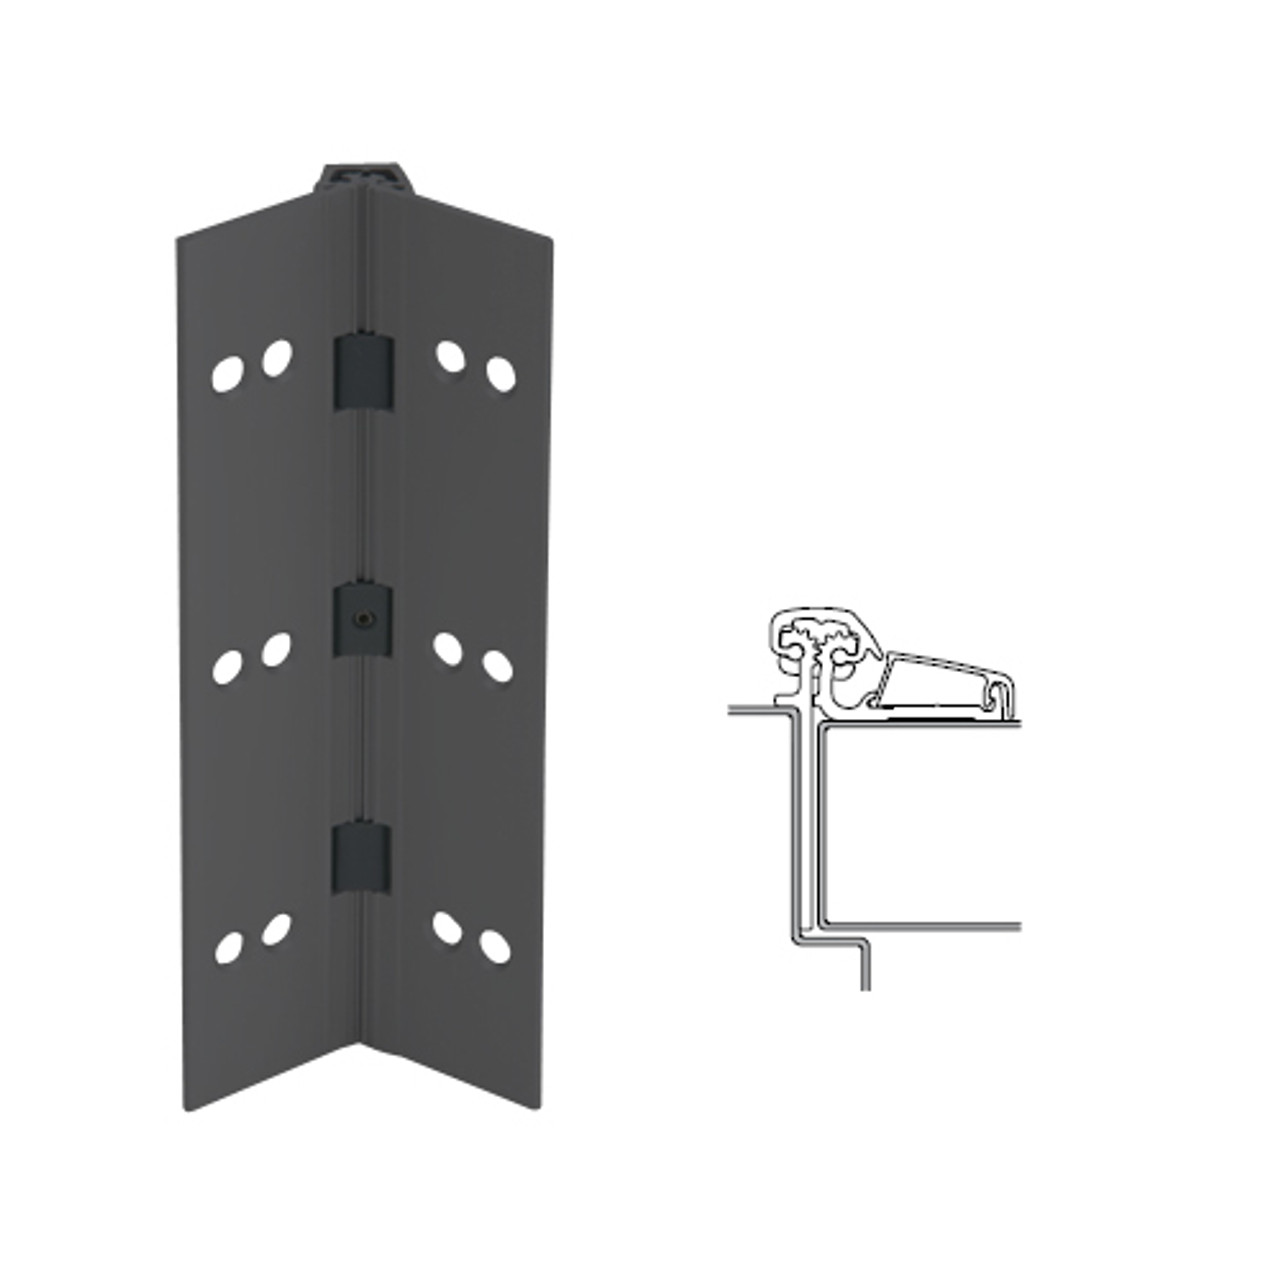 054XY-315AN-85-TEKWD IVES Adjustable Half Surface Continuous Geared Hinges with Wood Screws in Anodized Black